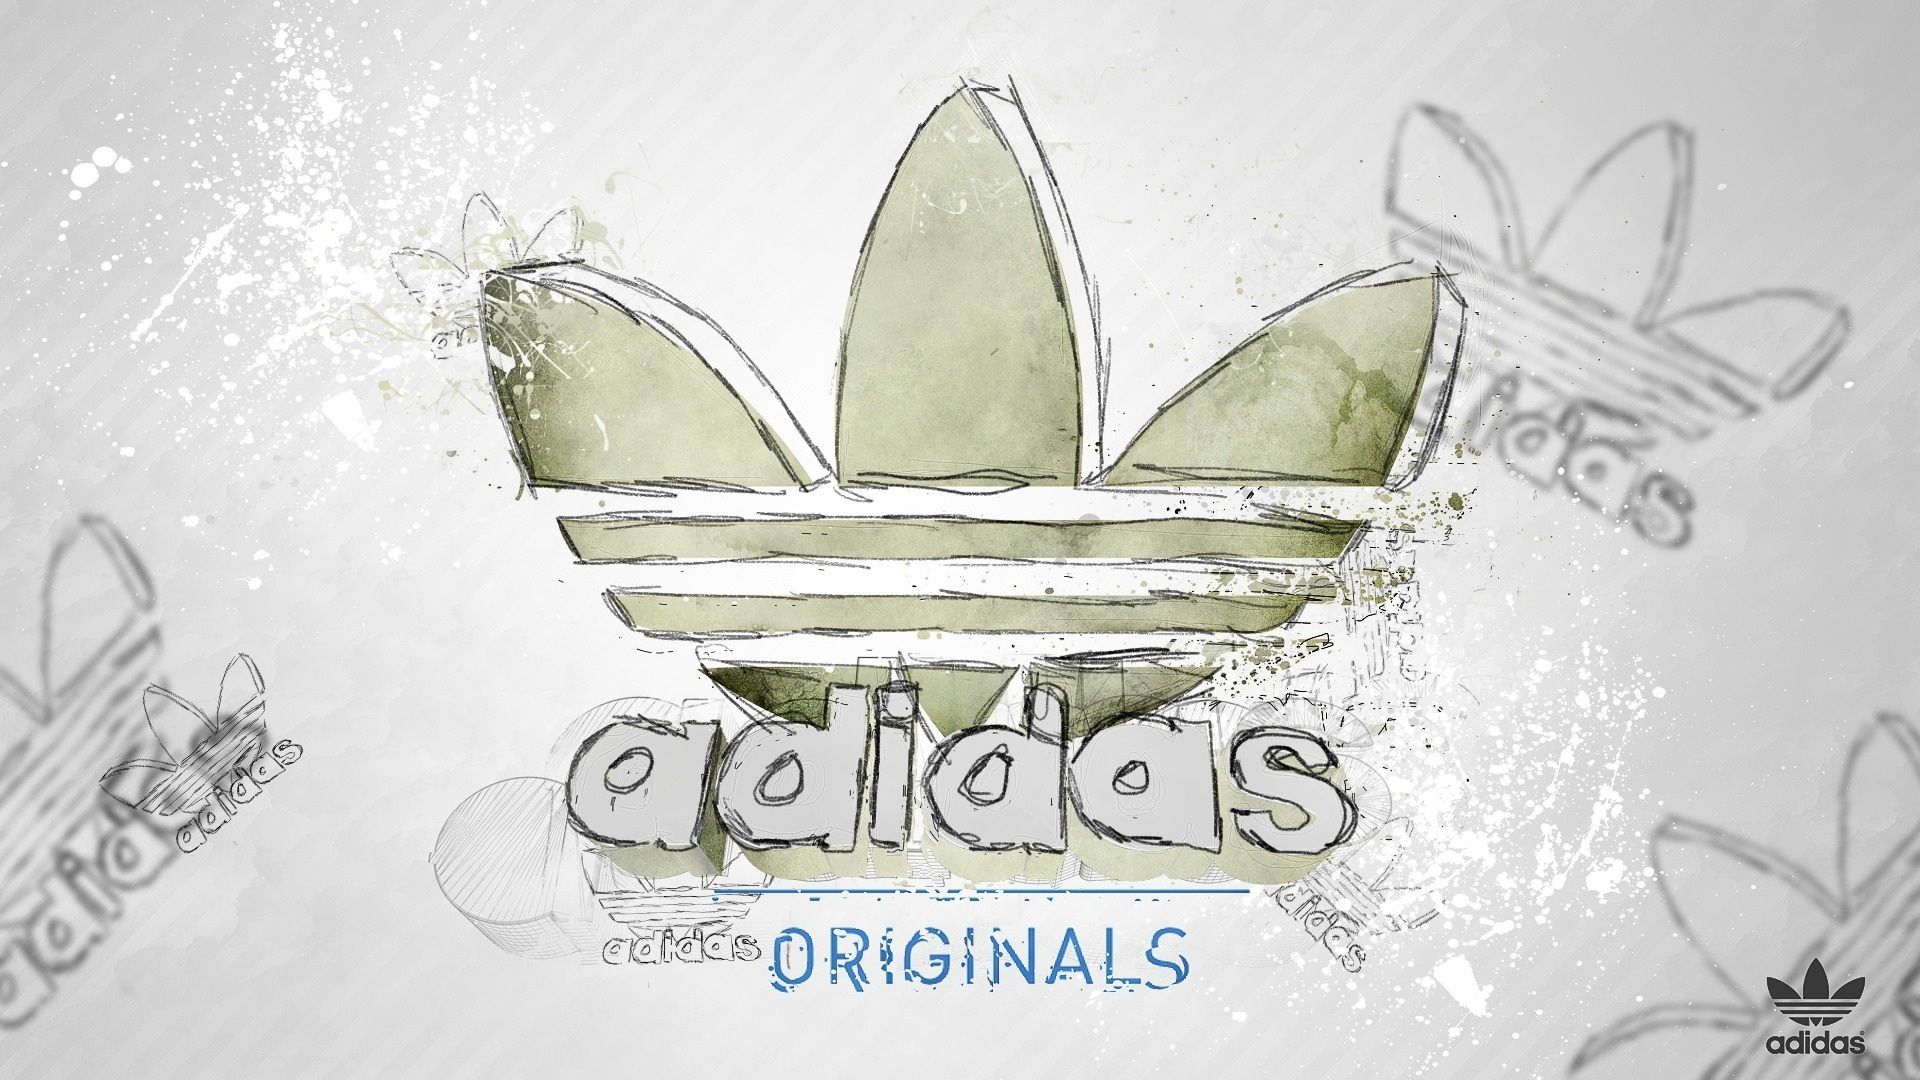 1920x1080 Wallpapers Logo Adidas Gallery (70 Plus) PIC WPW203772